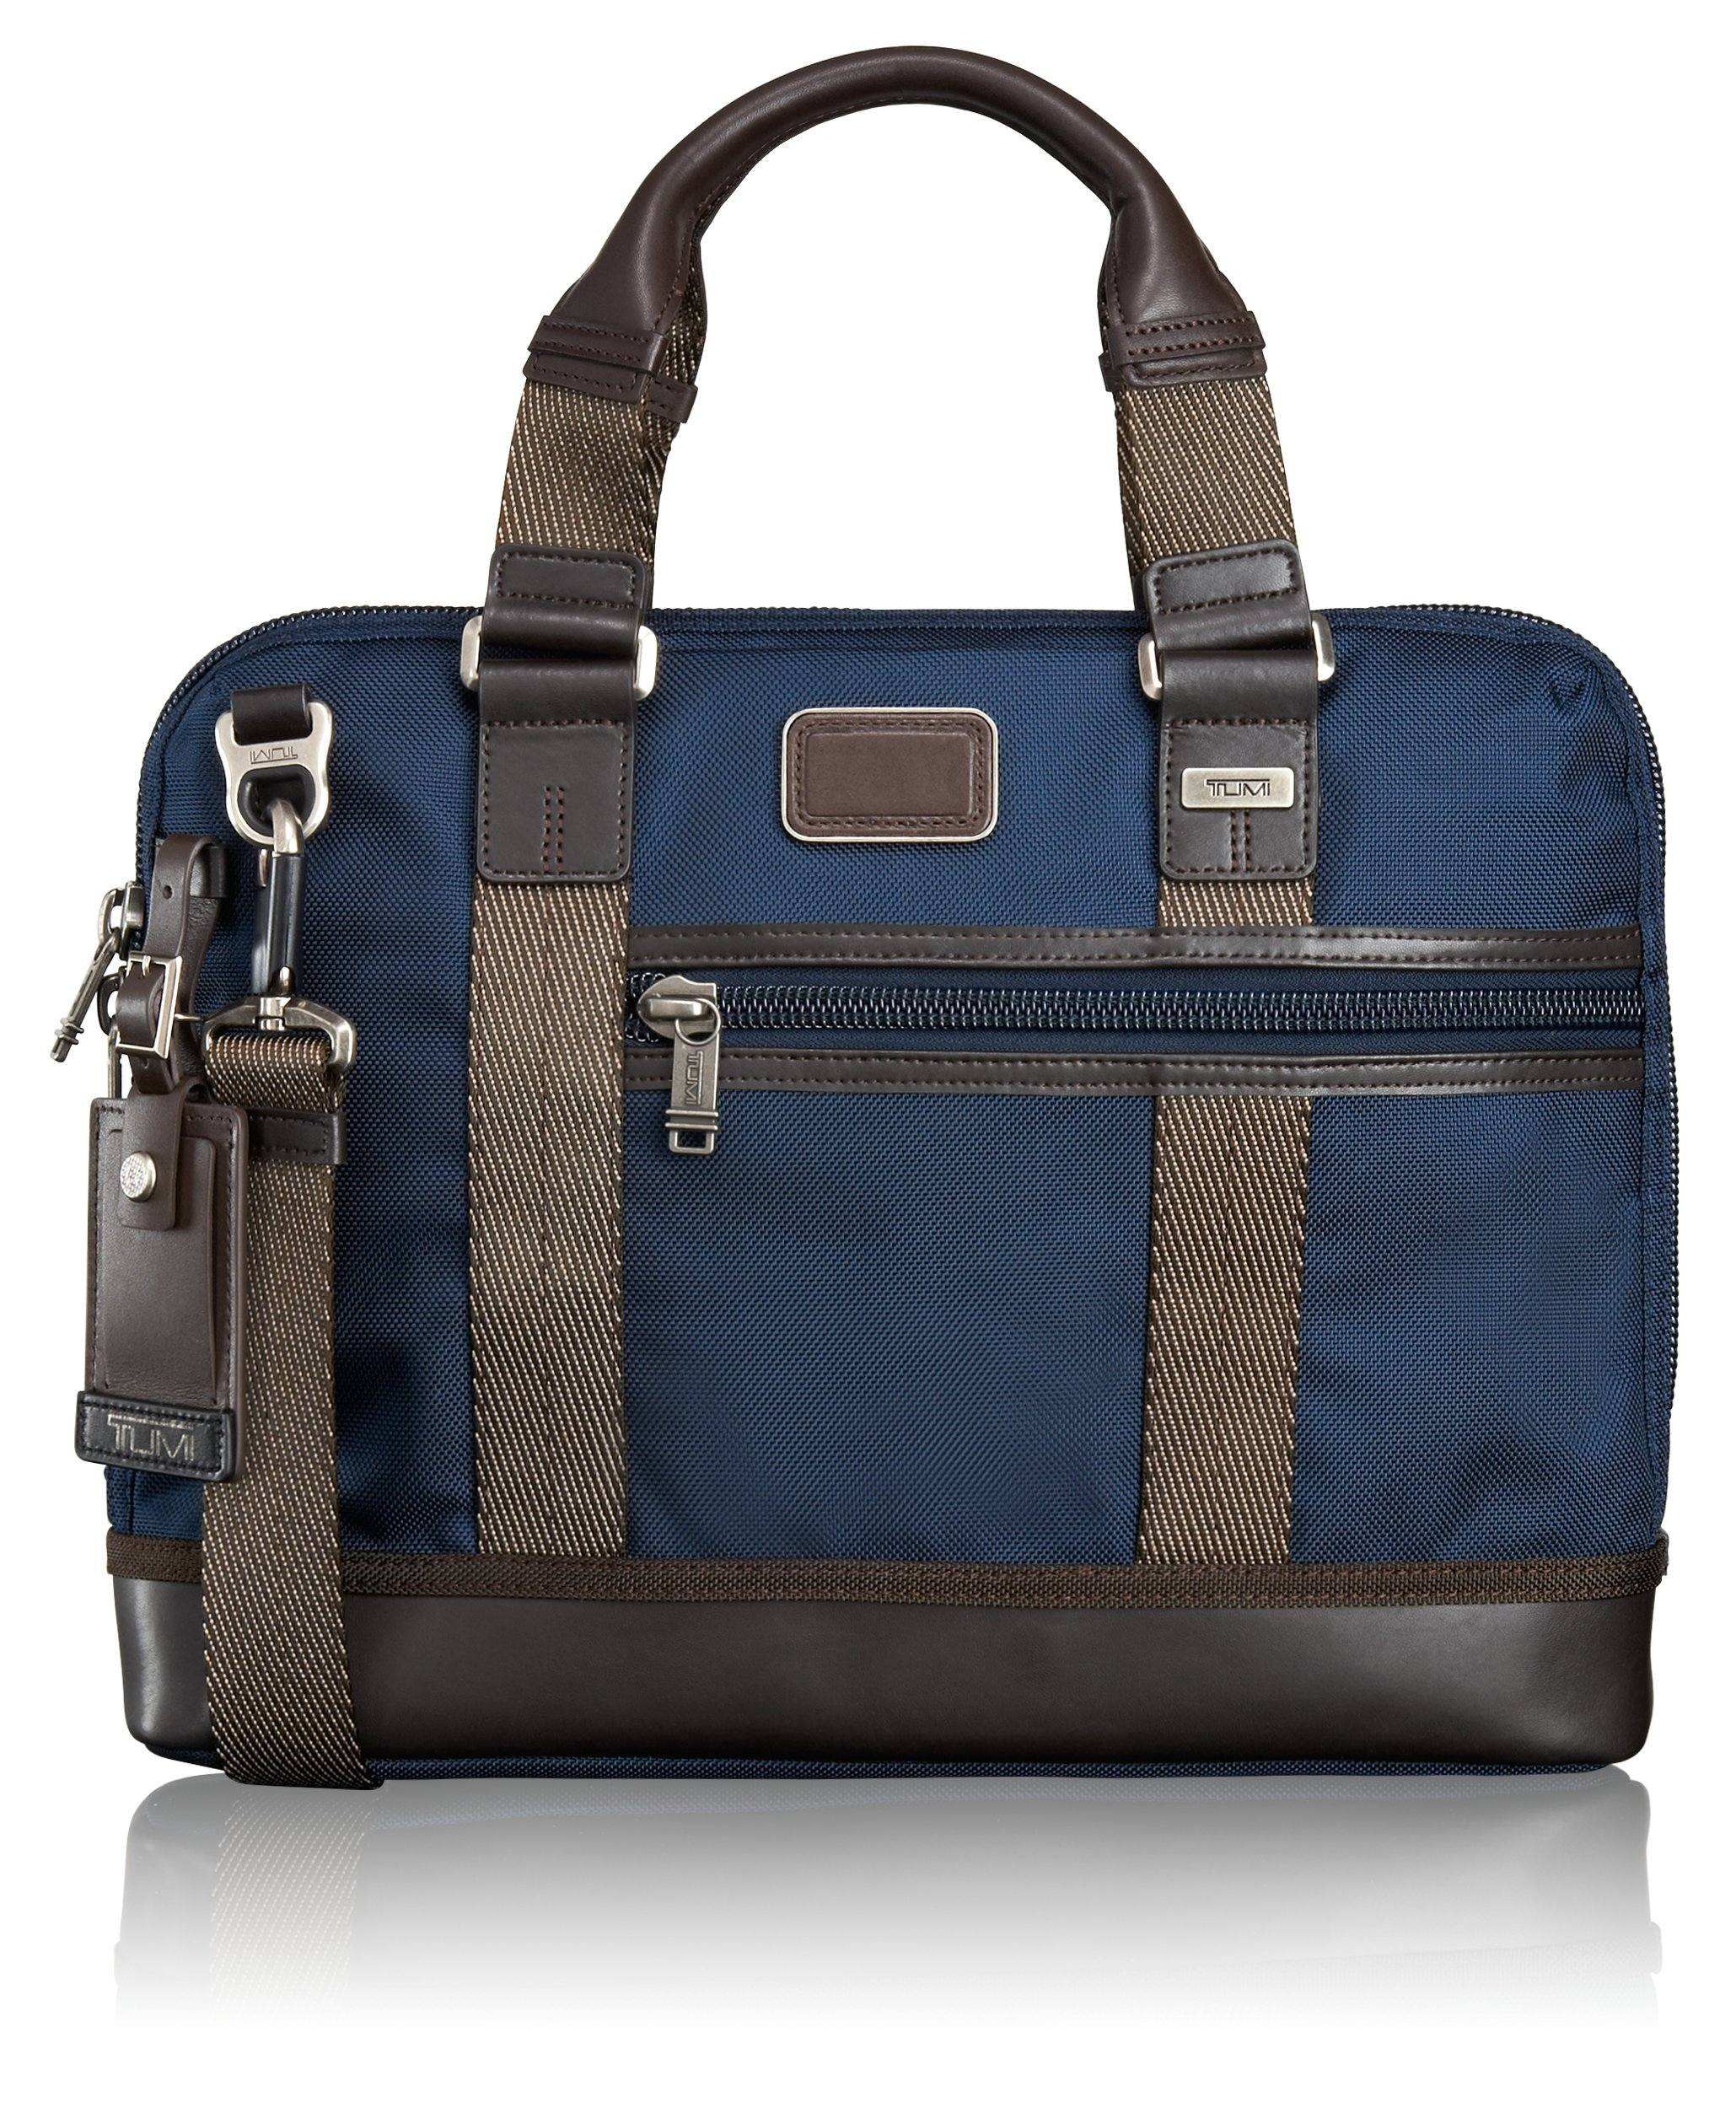 Tumi Alpha Bravo Earle Compact Brief, Navy, One Size